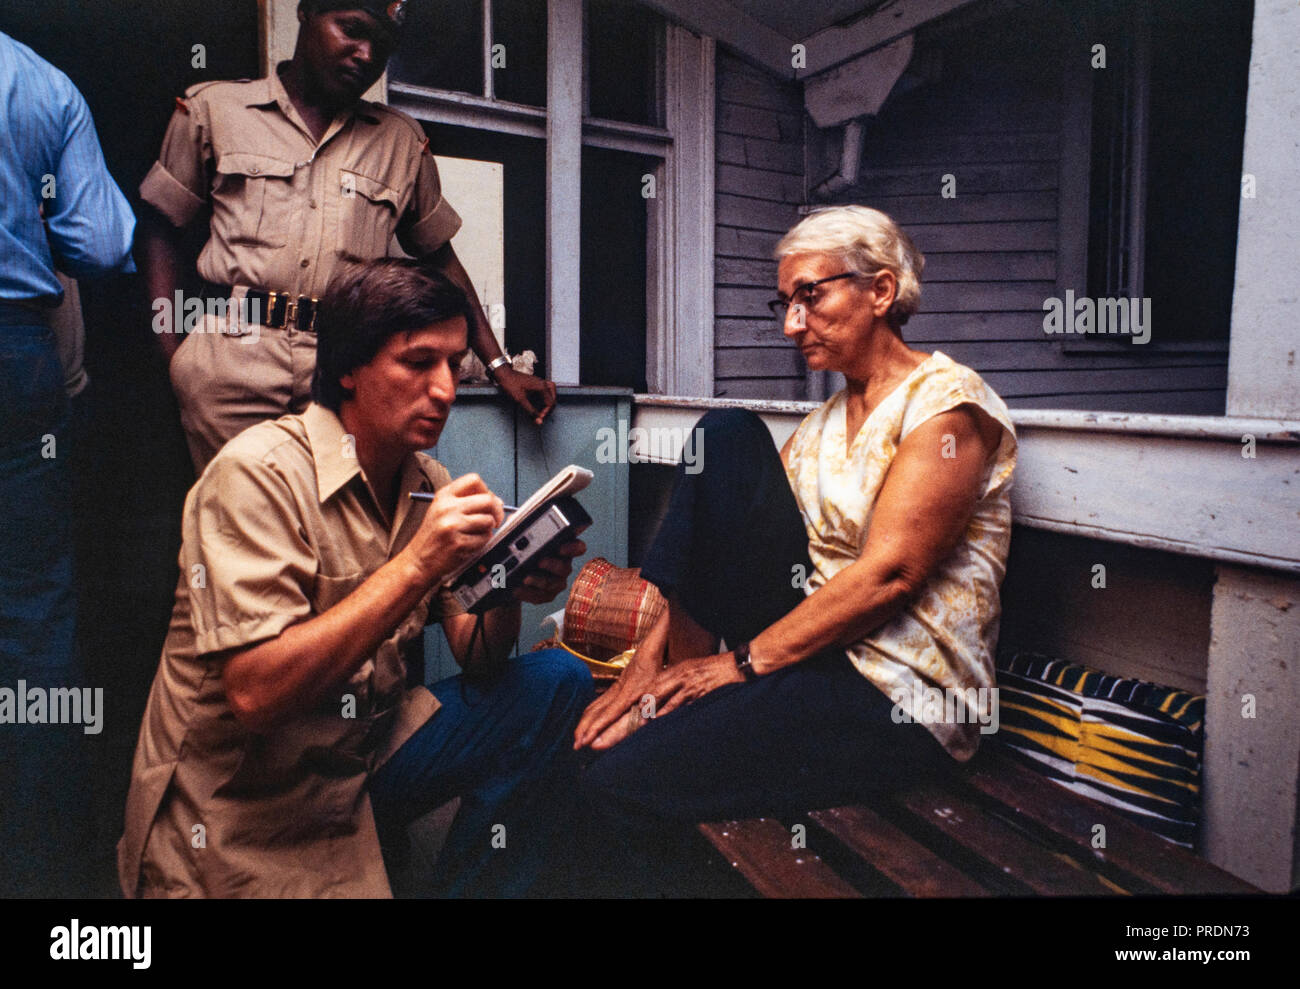 A Jonestown survivor talks with reporters. Jonestown was a remote settlement established by the Peoples Temple, an American cult under the leadership of reverend Jim Jones, in north Guyana. It became internationally notorious when, on November 18, 1978, a total of 918 people died. - Stock Image